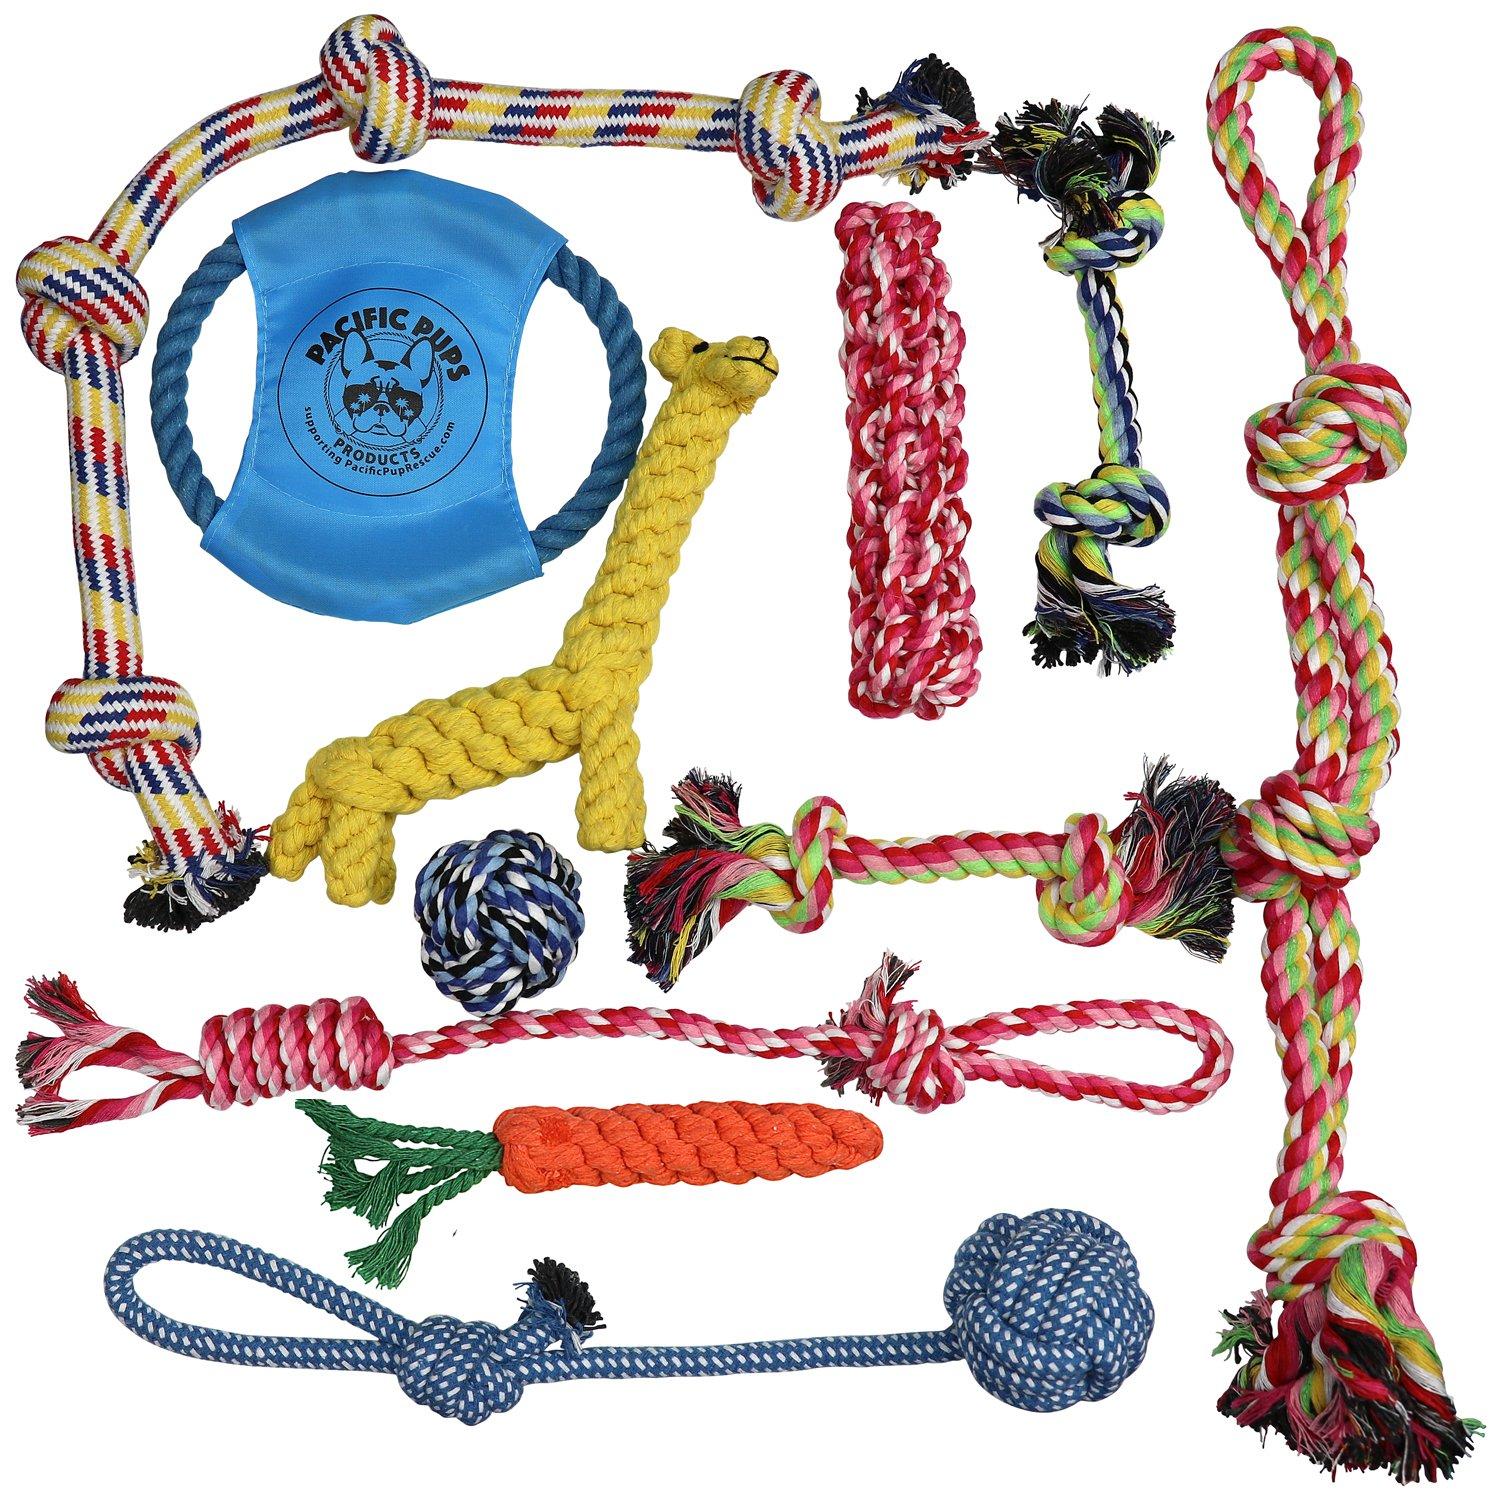 Pacific Pups Products supporting pacificpuprescue.com Dog Rope Toys for Aggressive CHEWERS - Set of 11 Nearly Indestructible Dog Toys - Bonus Giraffe Rope Toy - Benefits NONPROFIT Dog Rescue